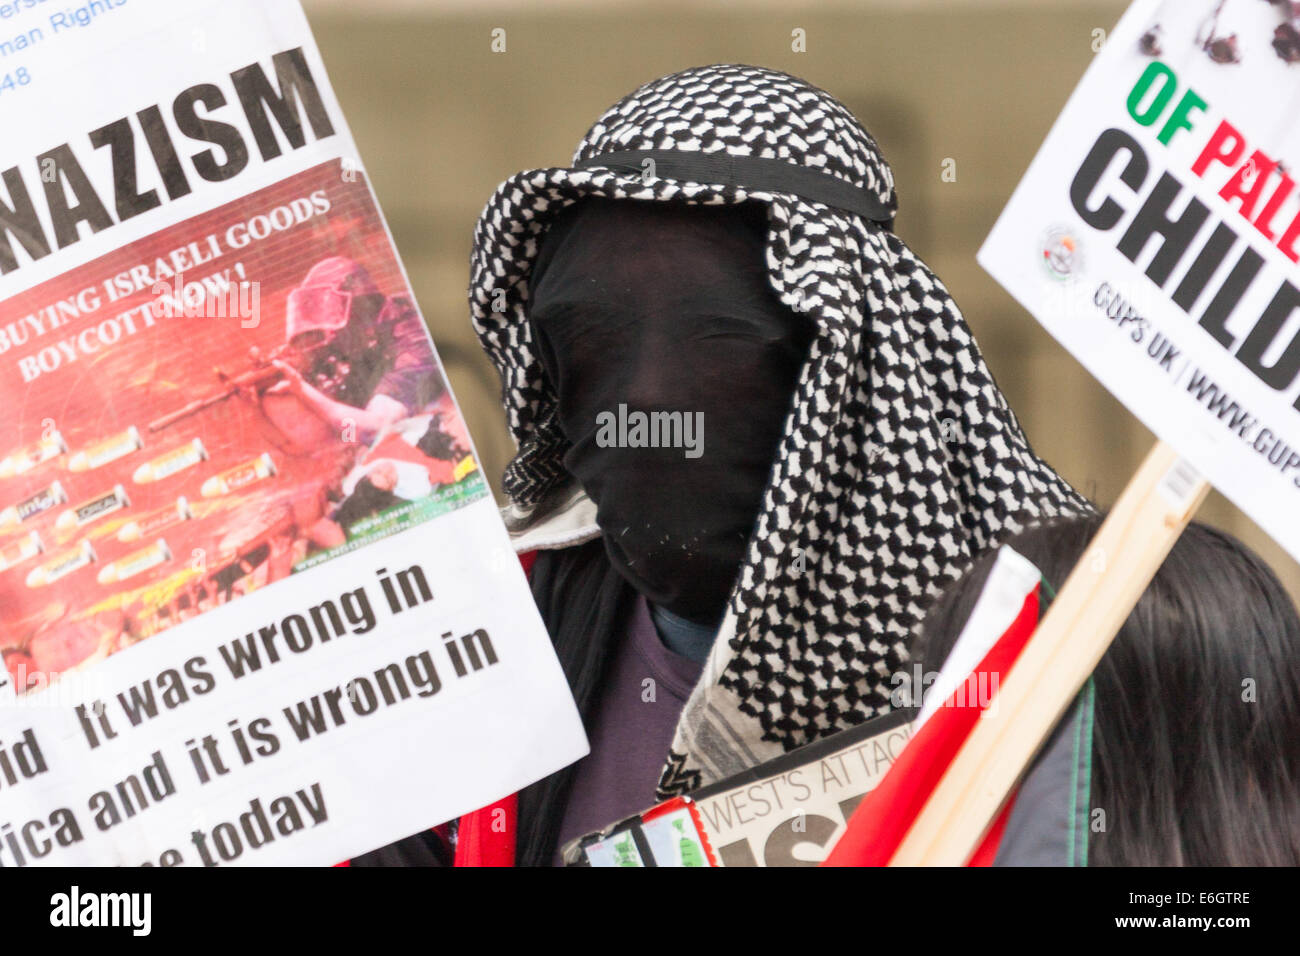 London, UK. 23rd August, 2014. A faceless protester demands a boycott of Israeli goods as hundreds of pro- Palestine - Stock Image